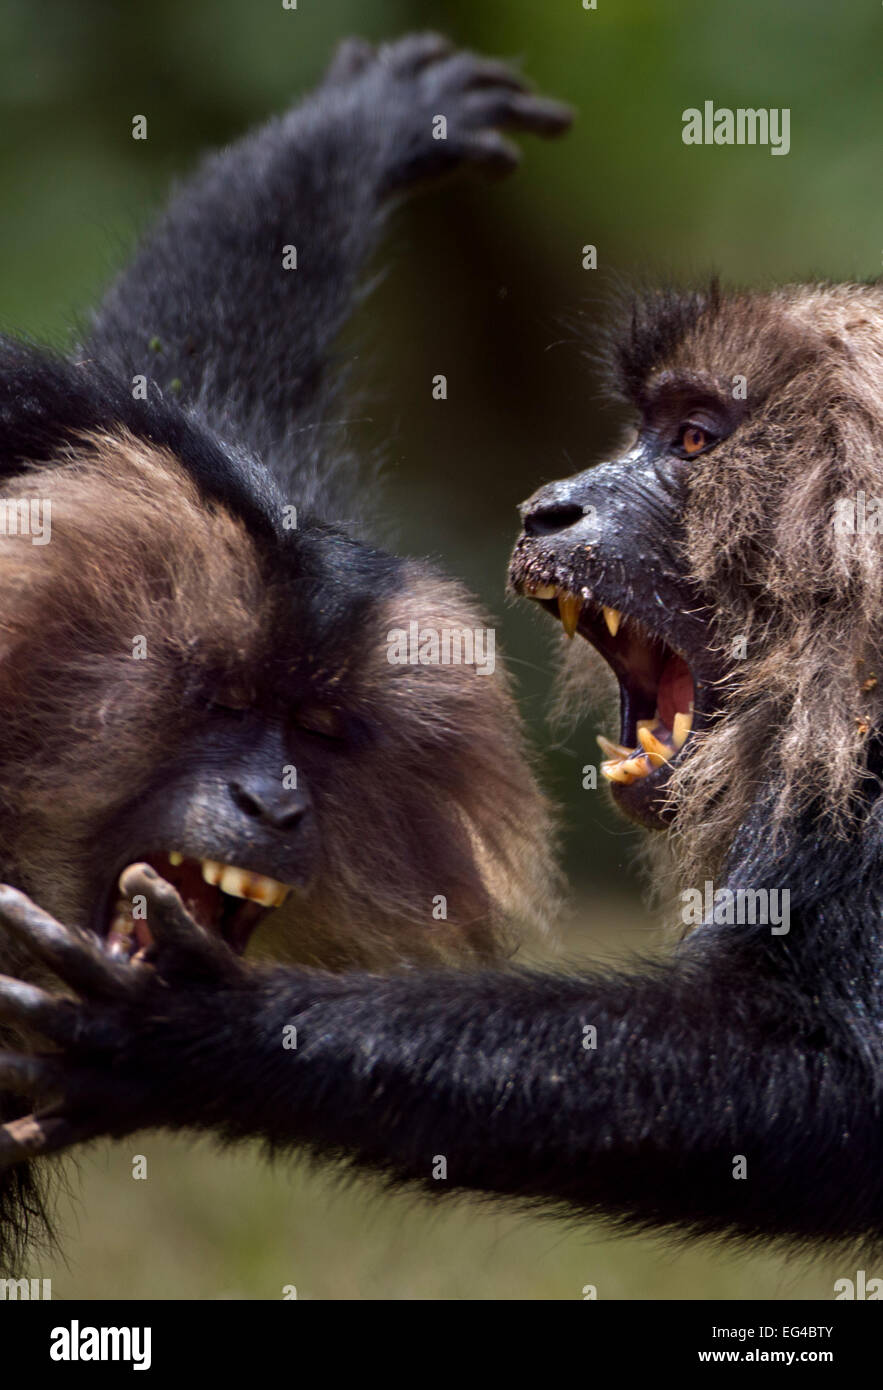 Lion-tailed macaques (Macaca silenus) play fighting. Anamalai Tiger Reserve Western Ghats Tamil Nadu India. - Stock Image